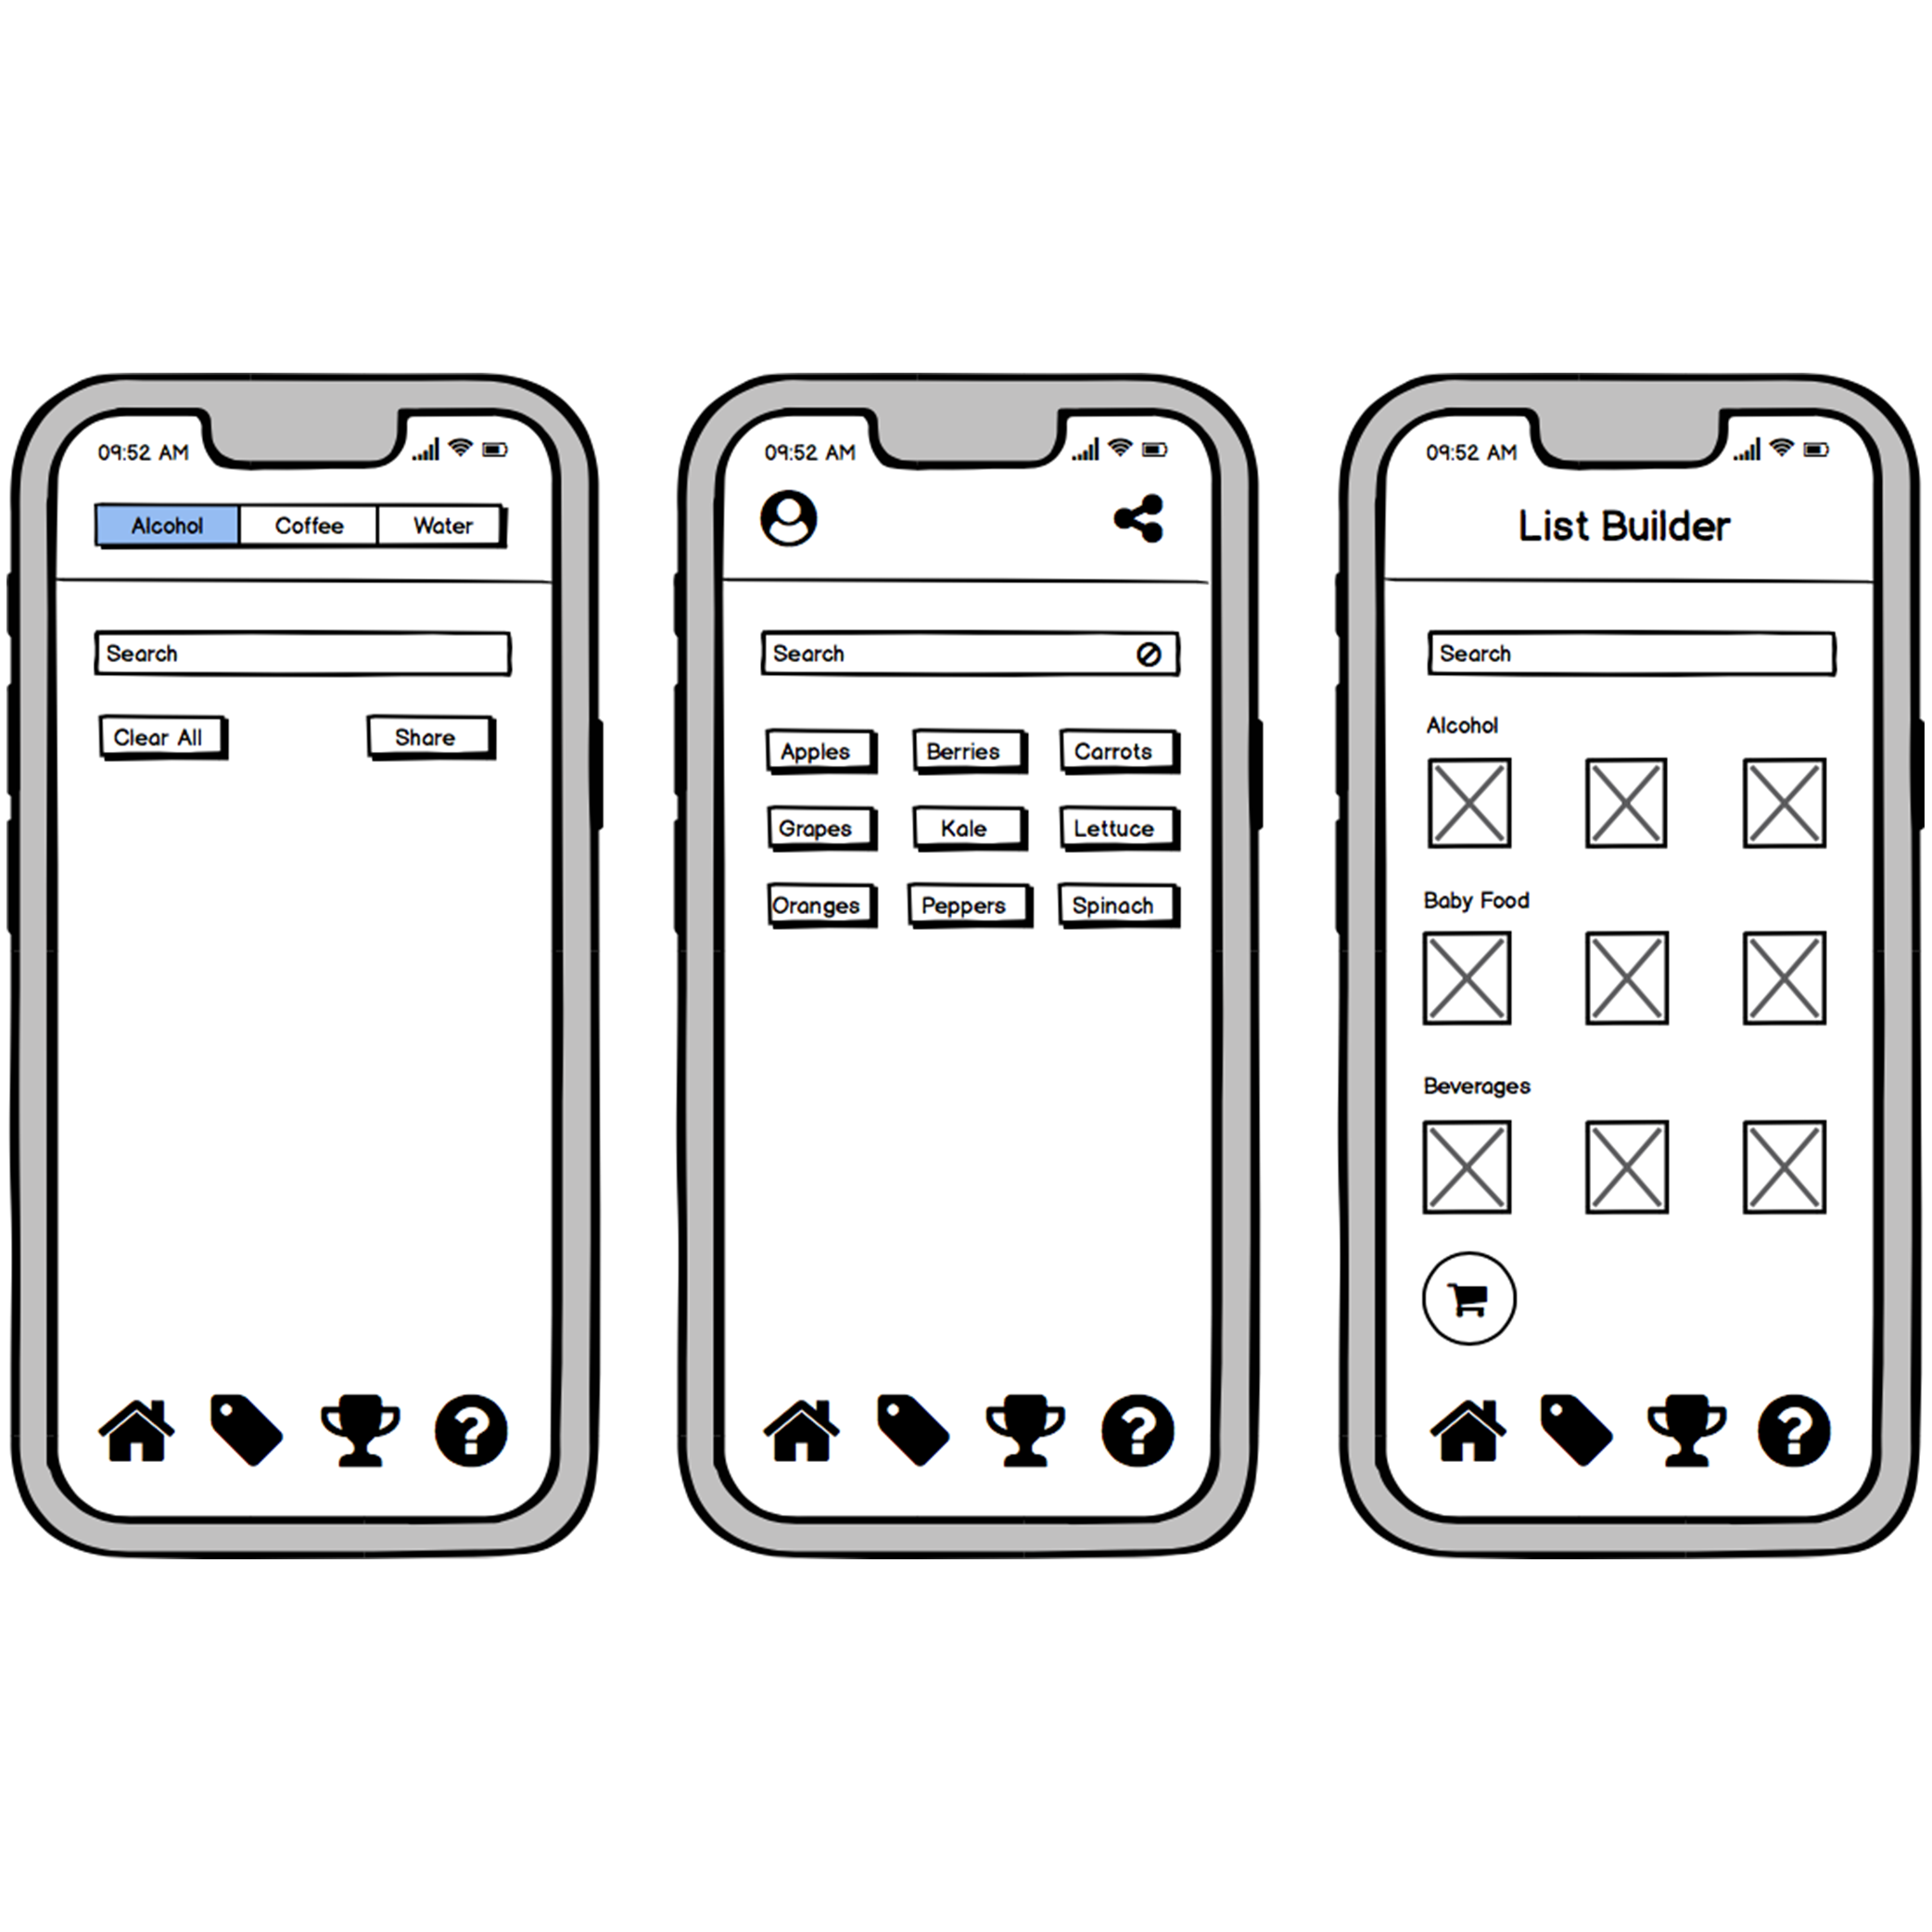 Wireframes of different iterations of the home screen